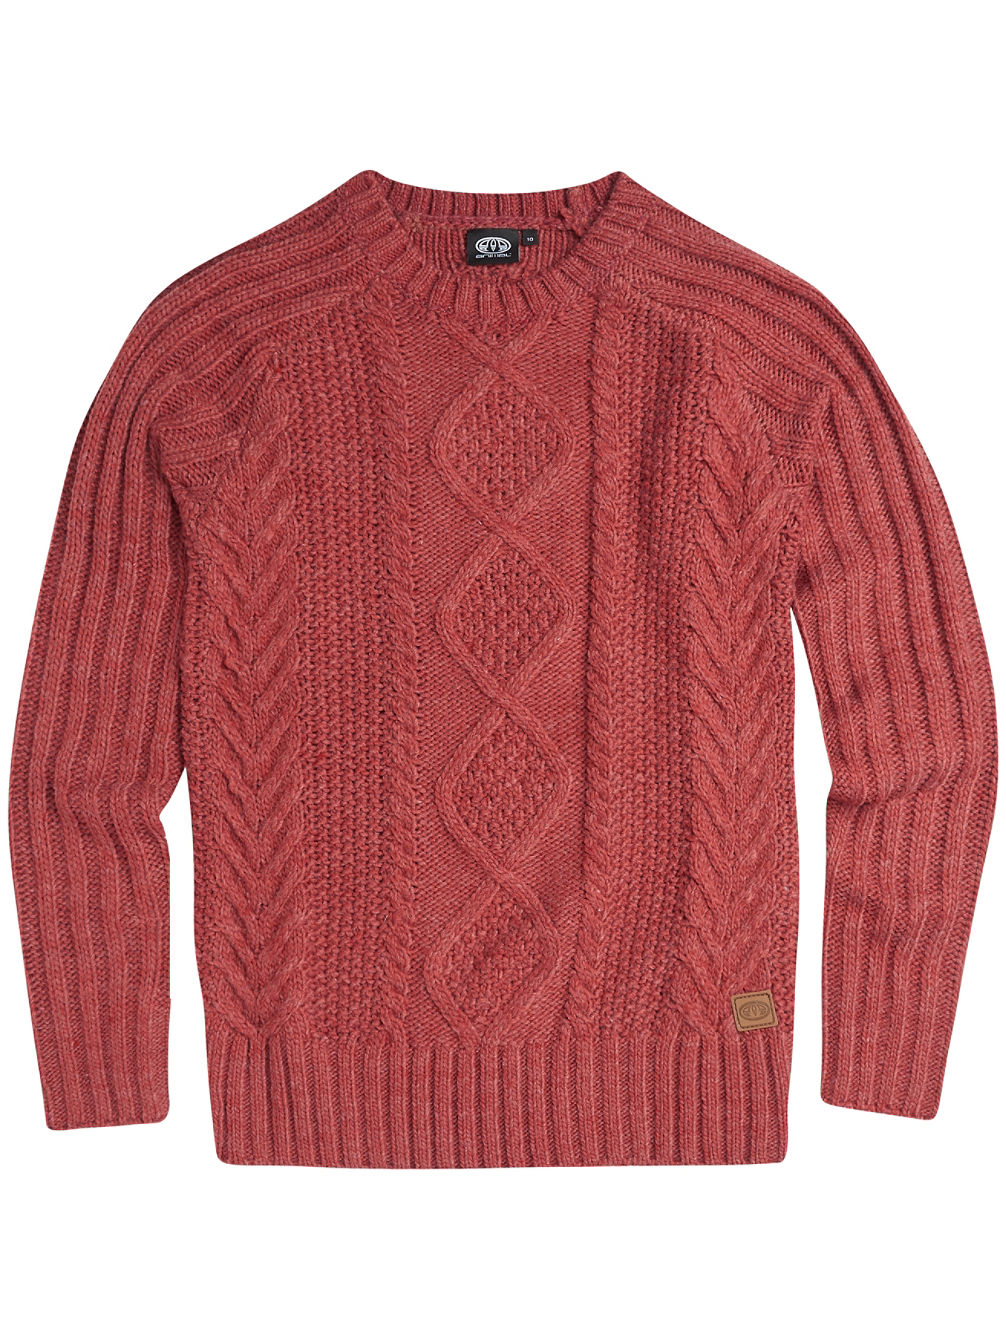 Errie Pullover